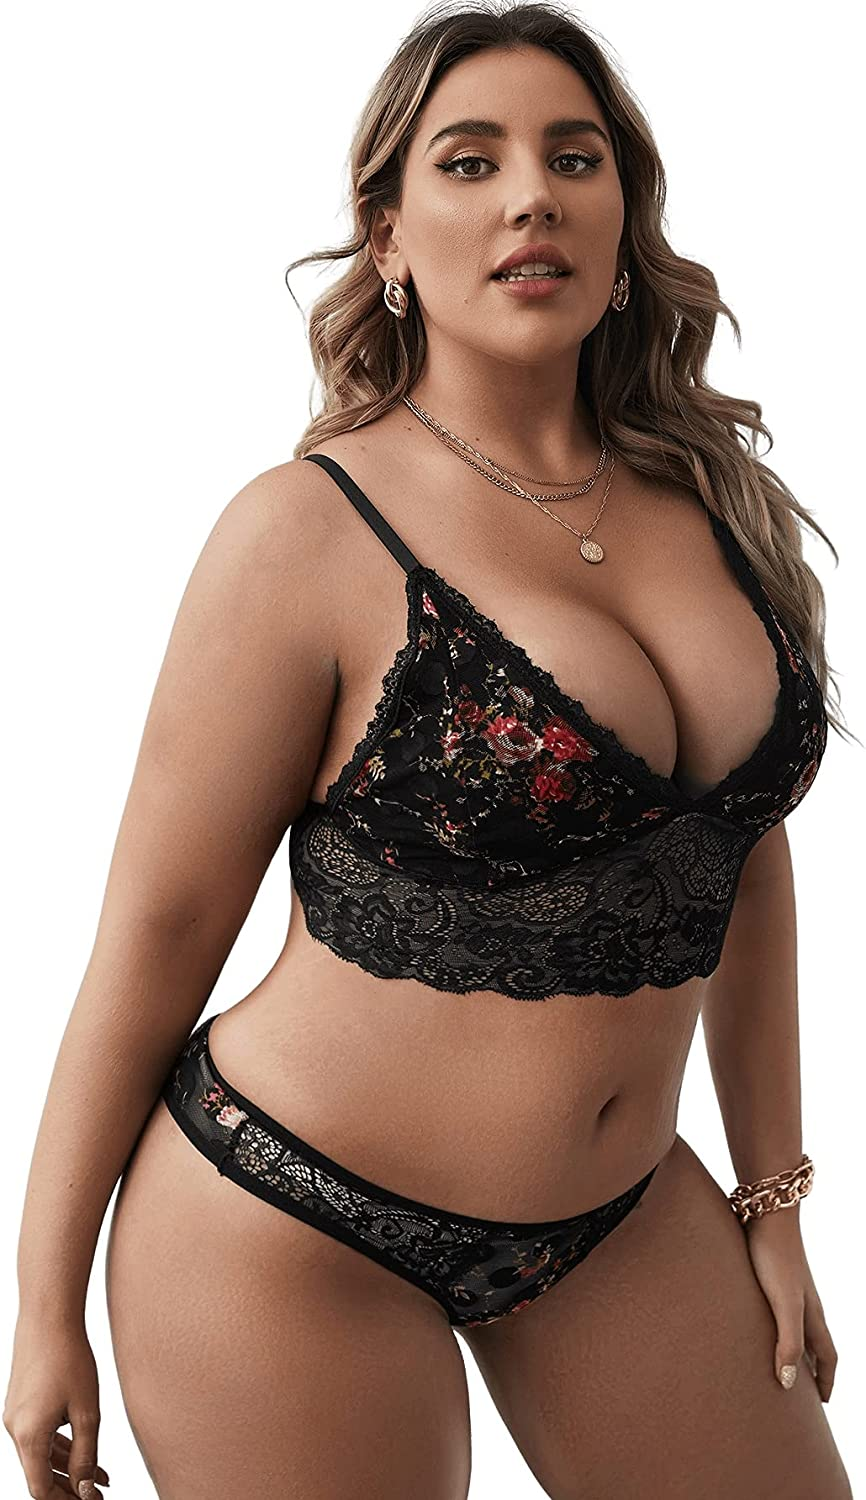 SheIn Women's Plus Size Floral Embroidery Lace Bralette and Panty Lingerie Set